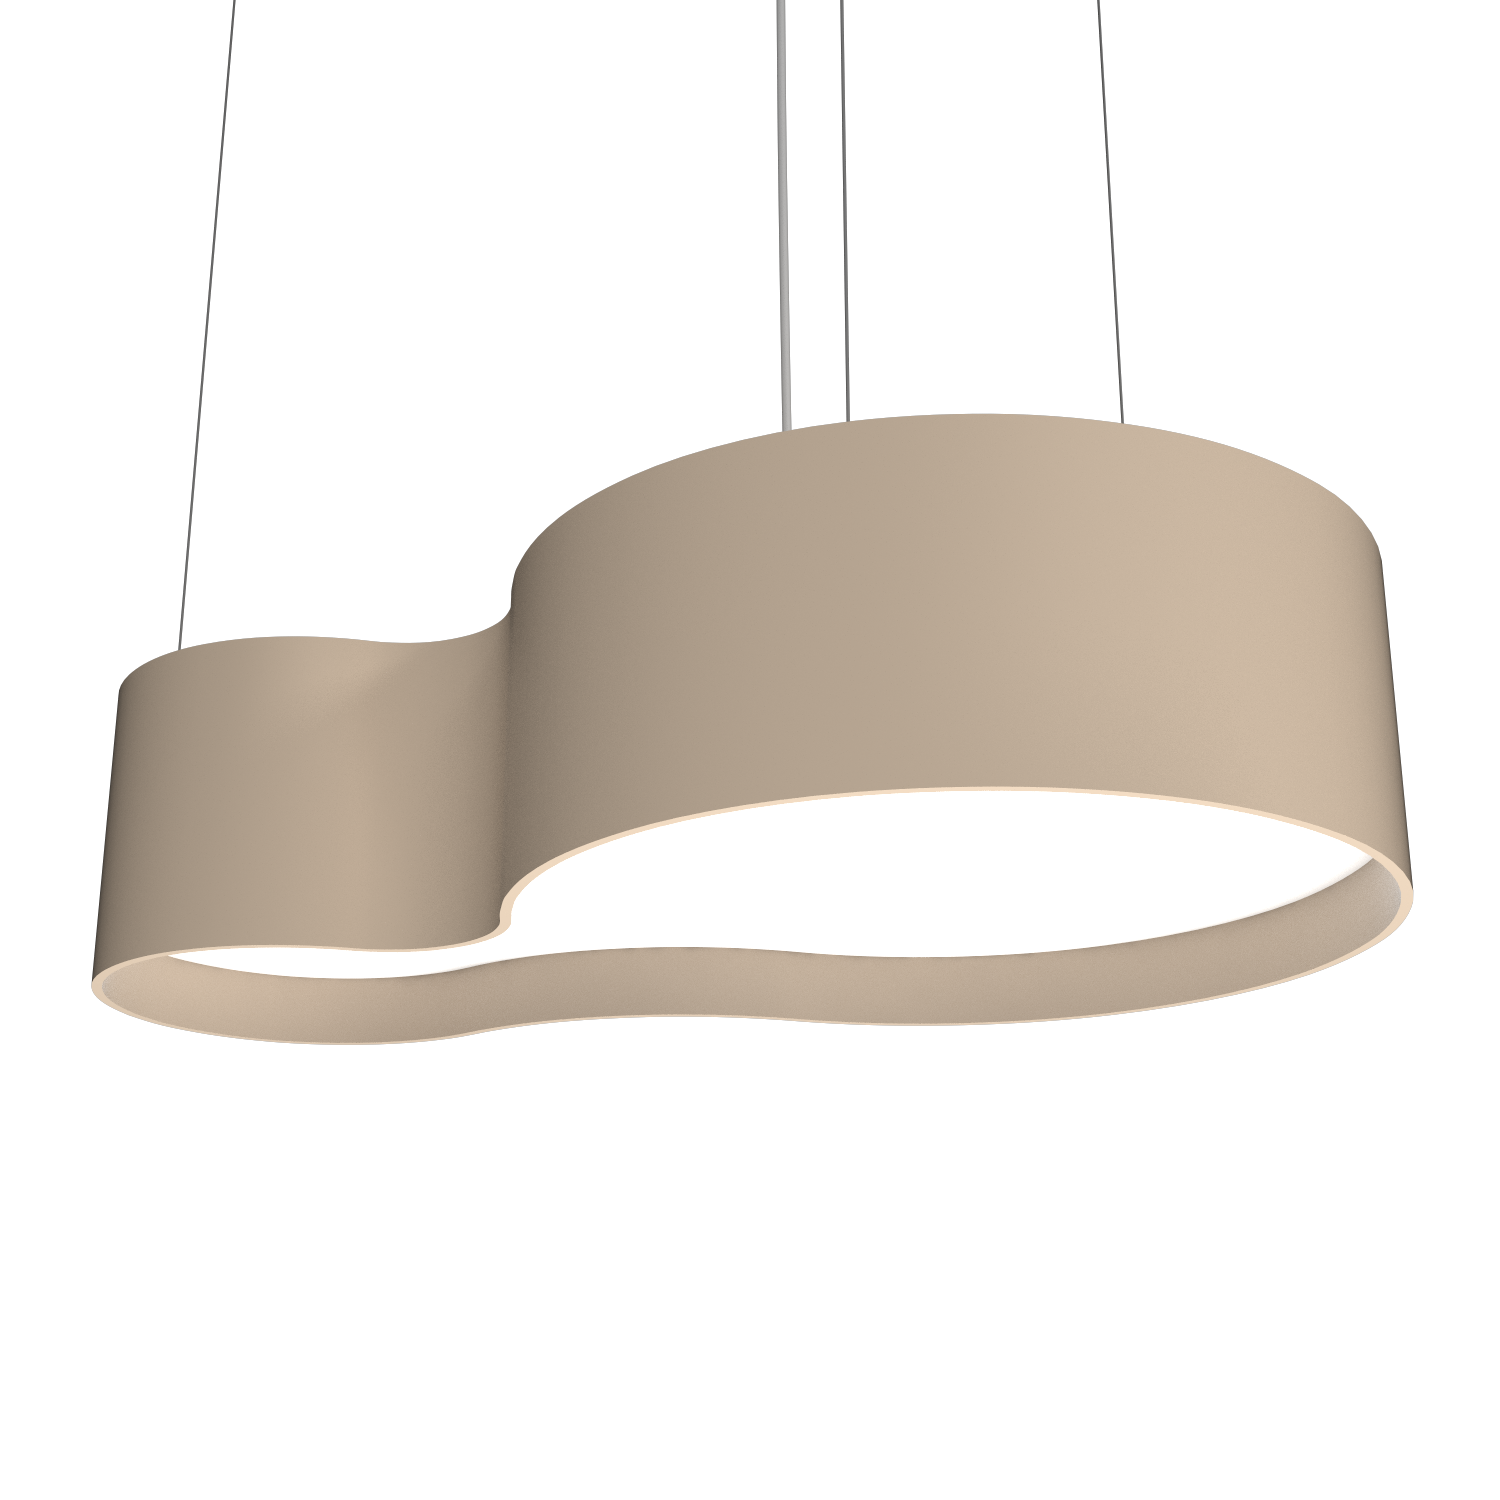 Pendant Lamp Accord Orgânico 285 - Orgânica Line Accord Lighting | 15. Cappuccino